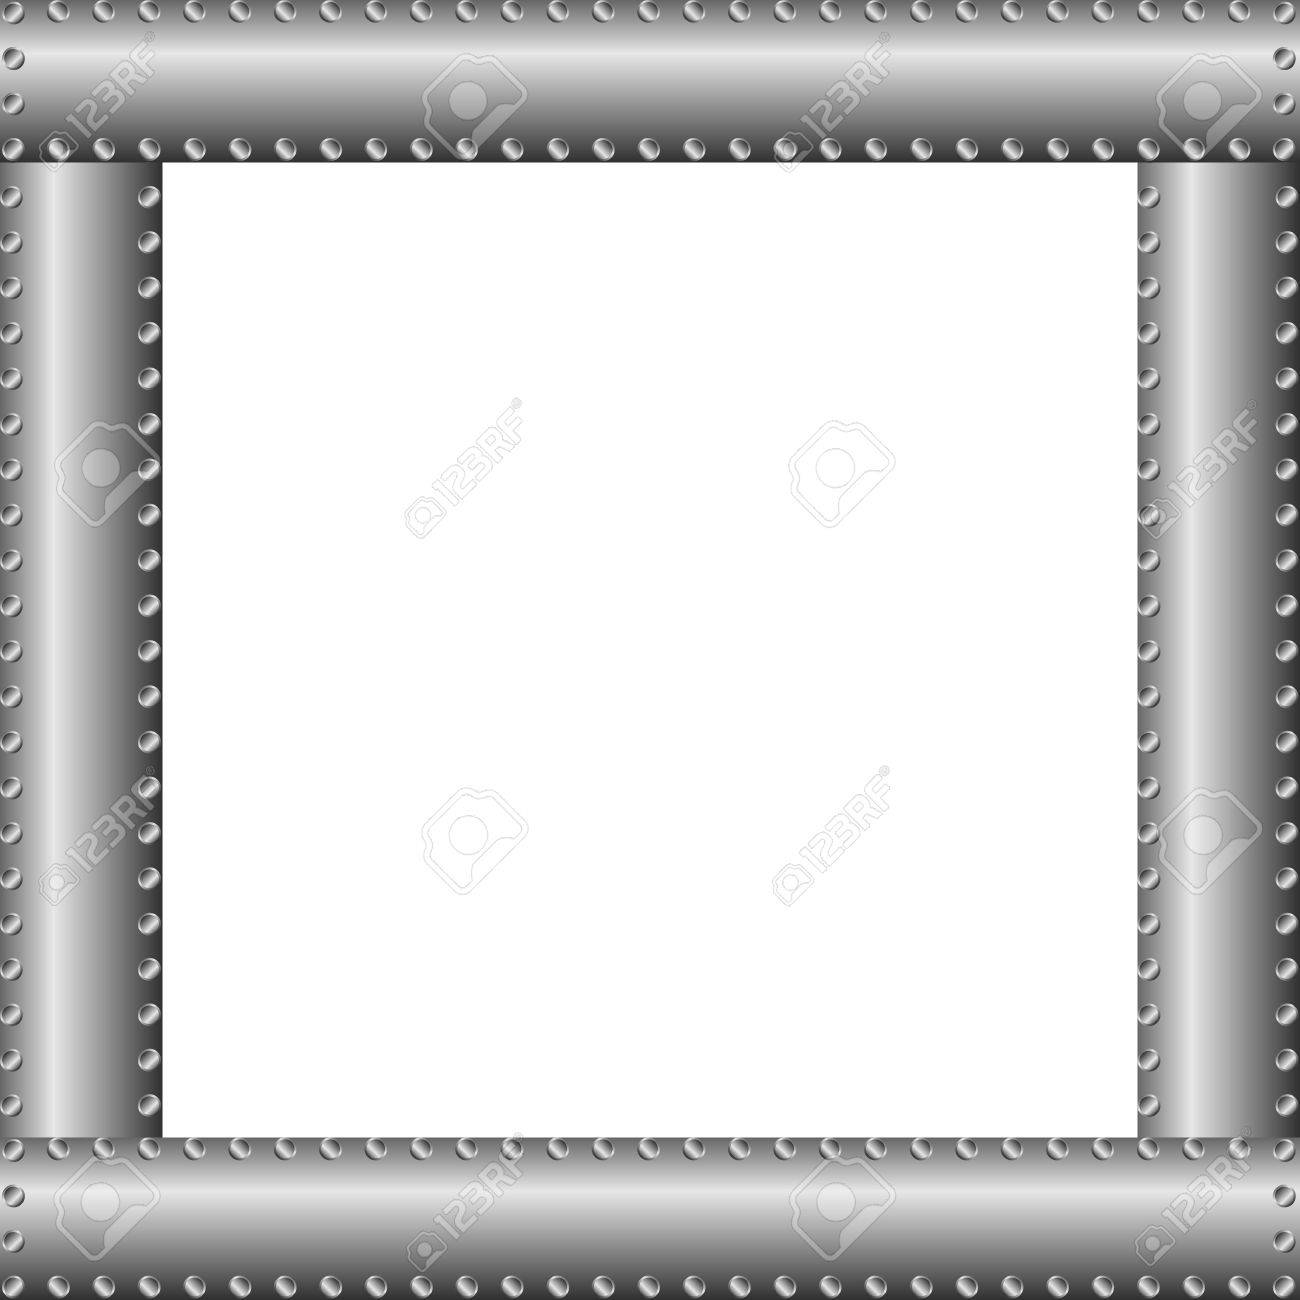 Metal background or texture with rivets Stock Vector - 11342007